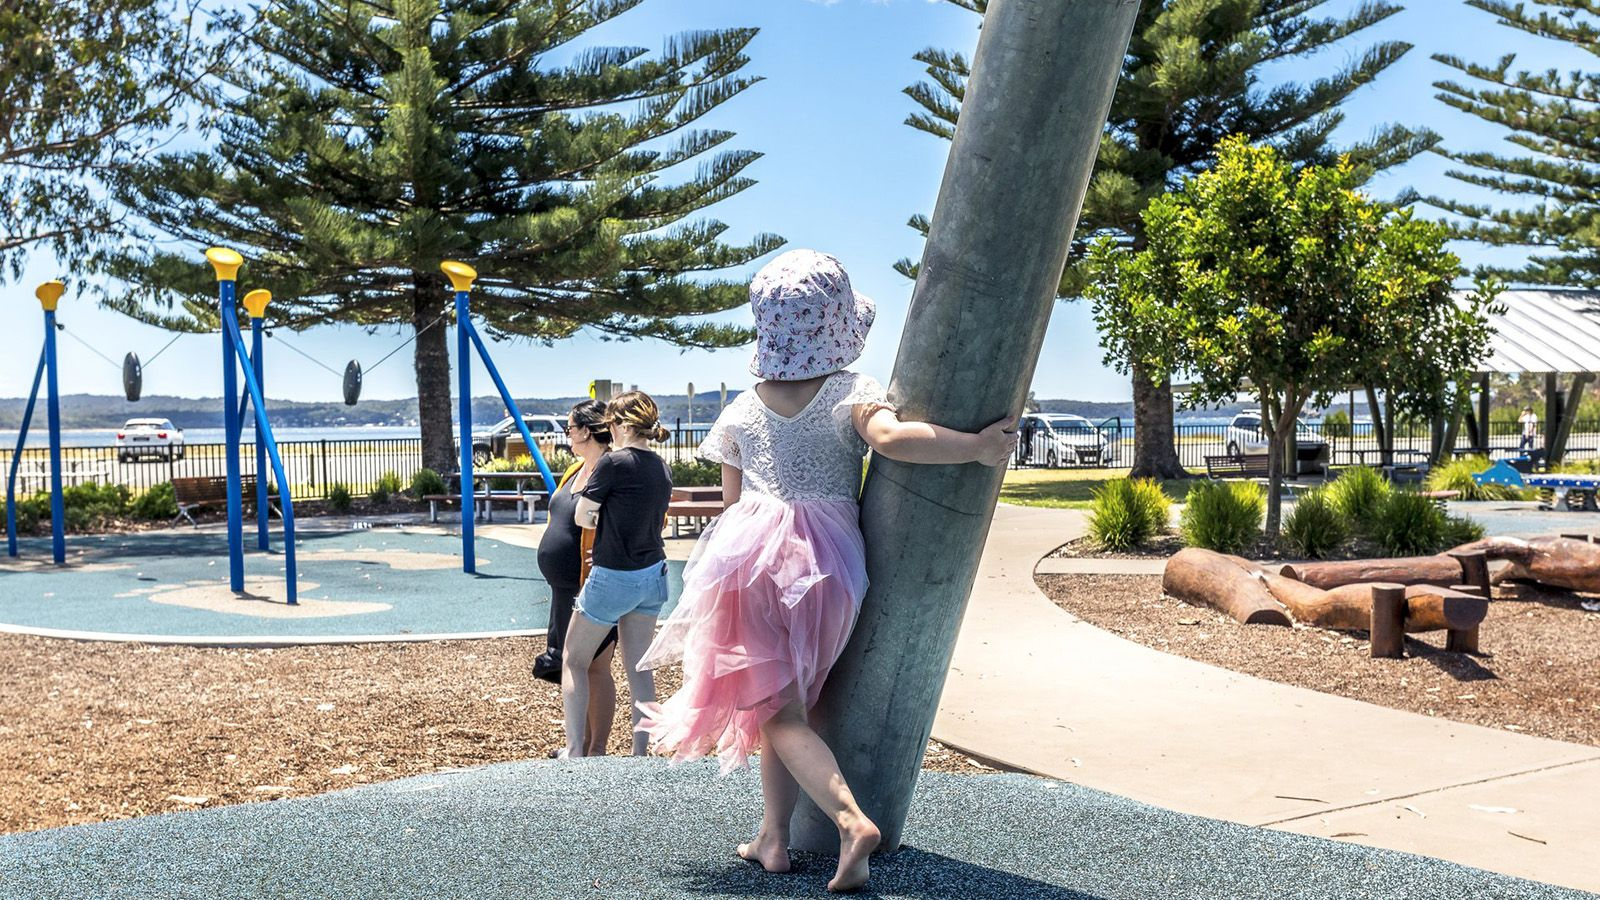 A young girl wearing a pink dress and hat holding onto a pole at Batehaven inclusive playground banner image